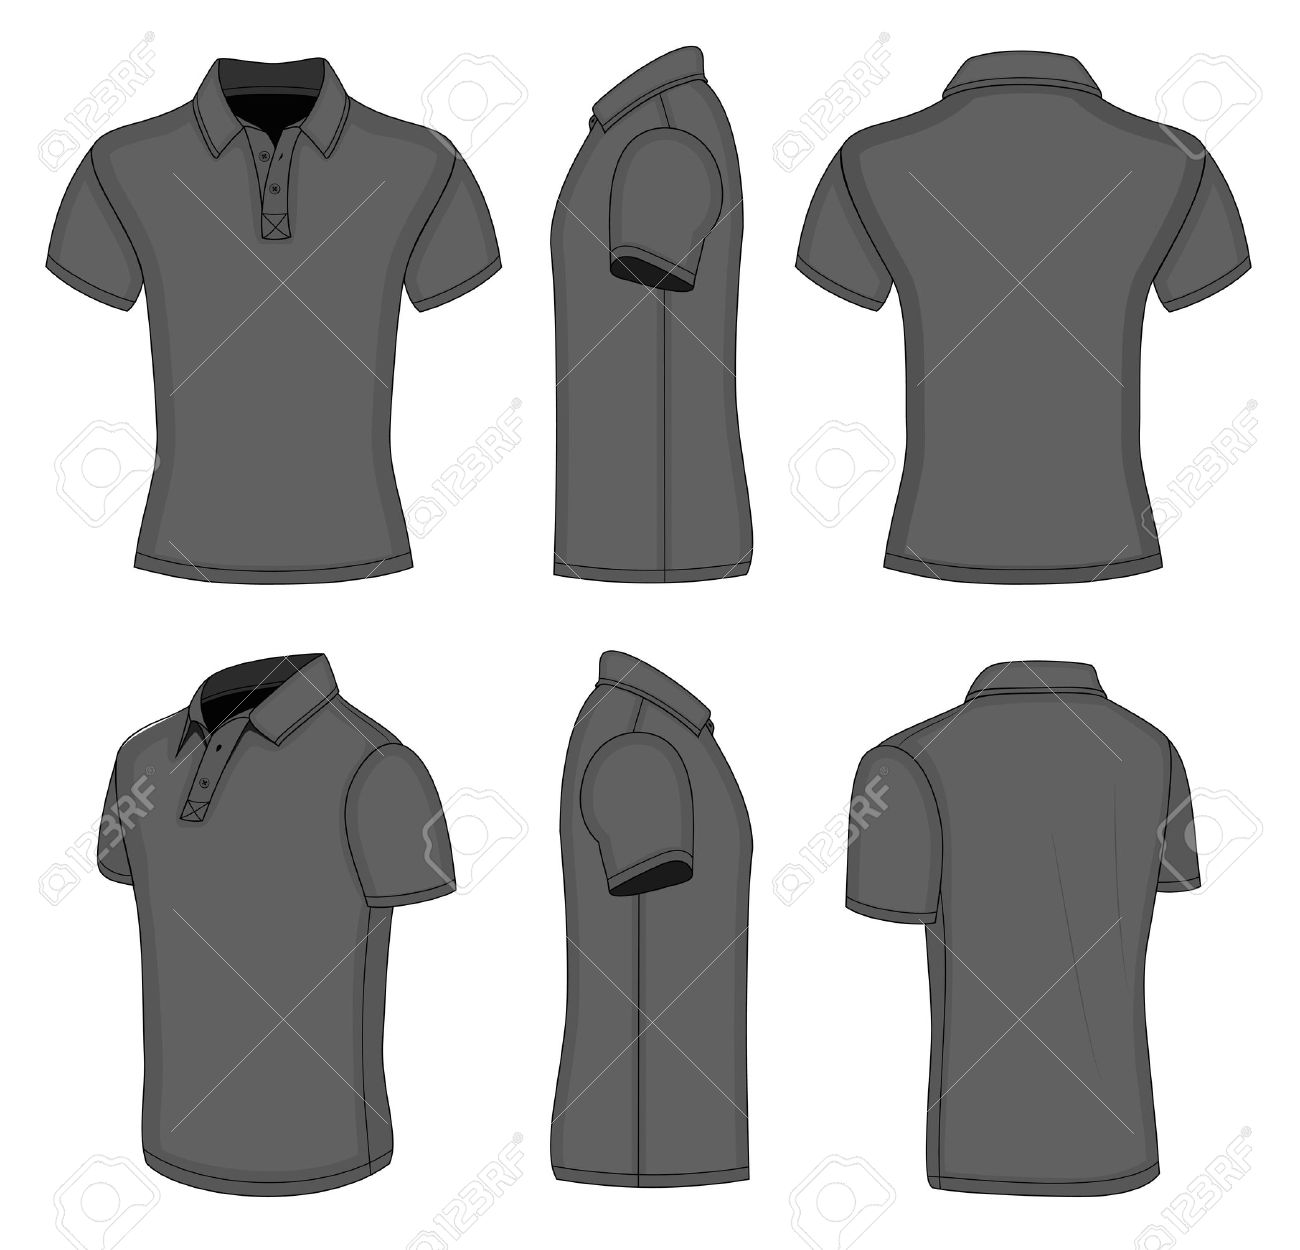 Polo Shirt Stock Photos & Pictures. Royalty Free Polo Shirt Images ...